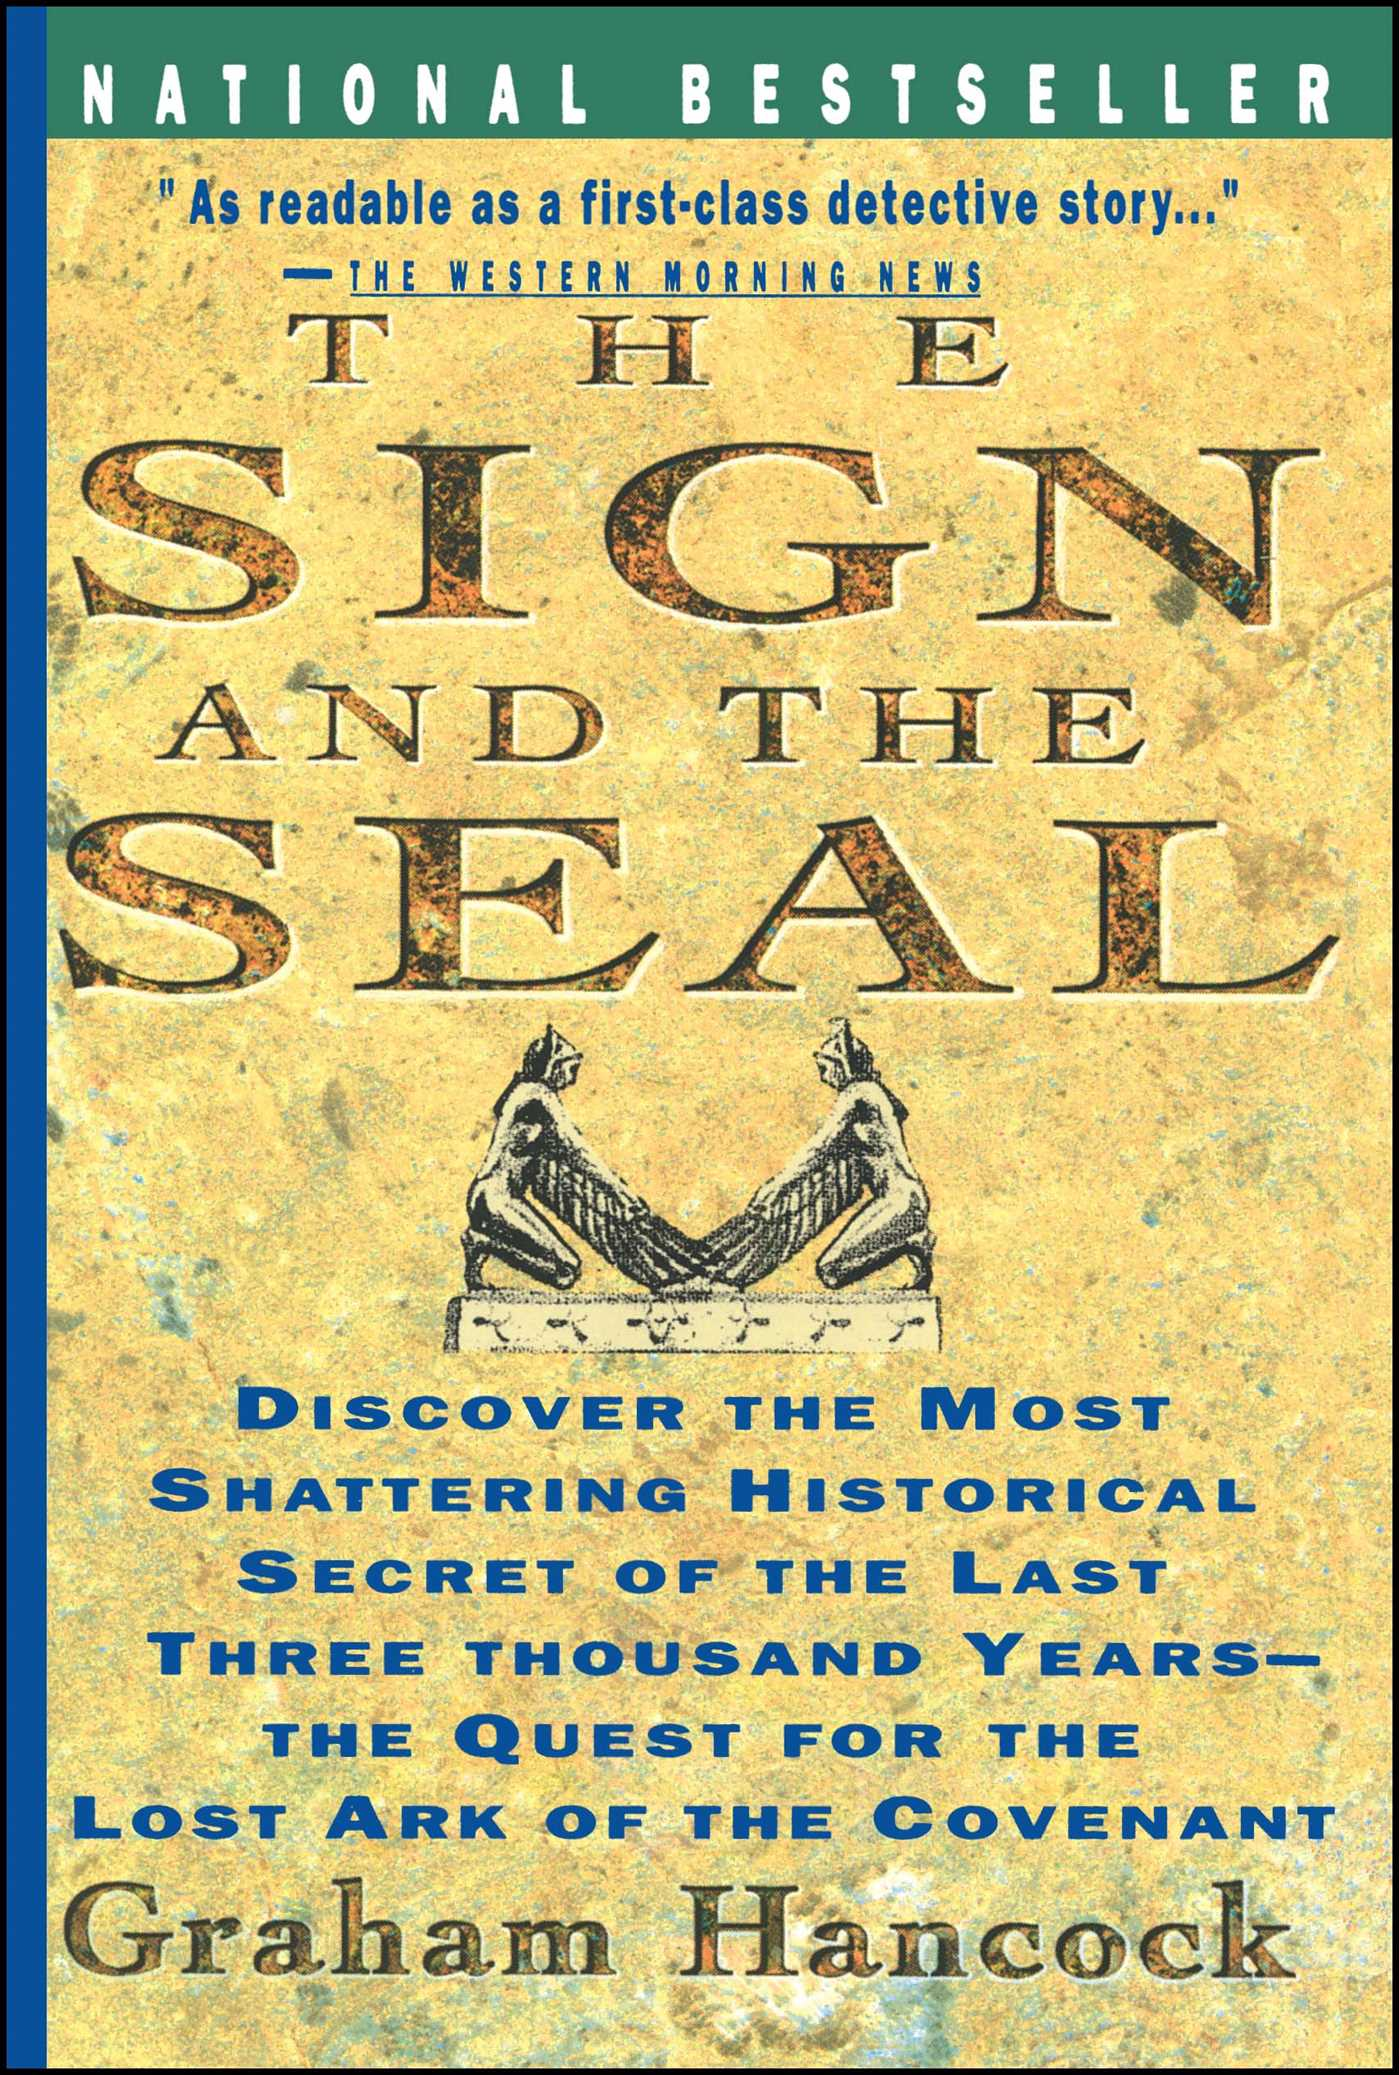 Sign-and-the-seal-9780671865412_hr